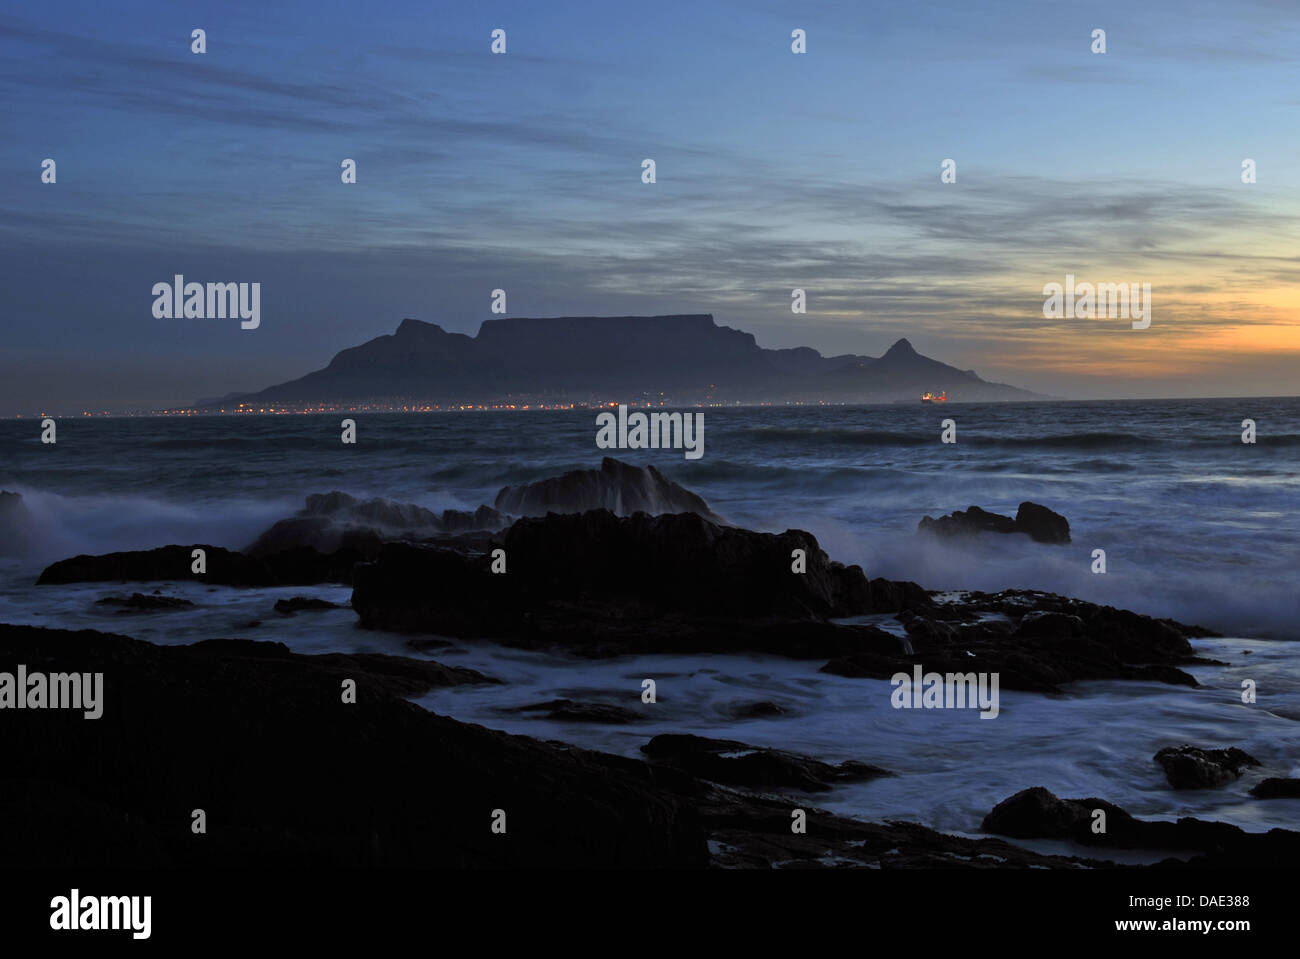 The Table Mountain, the landmark of Cape Town, is pictured shortly before sunset in Cape Town, South Africa, 06 - Stock Image